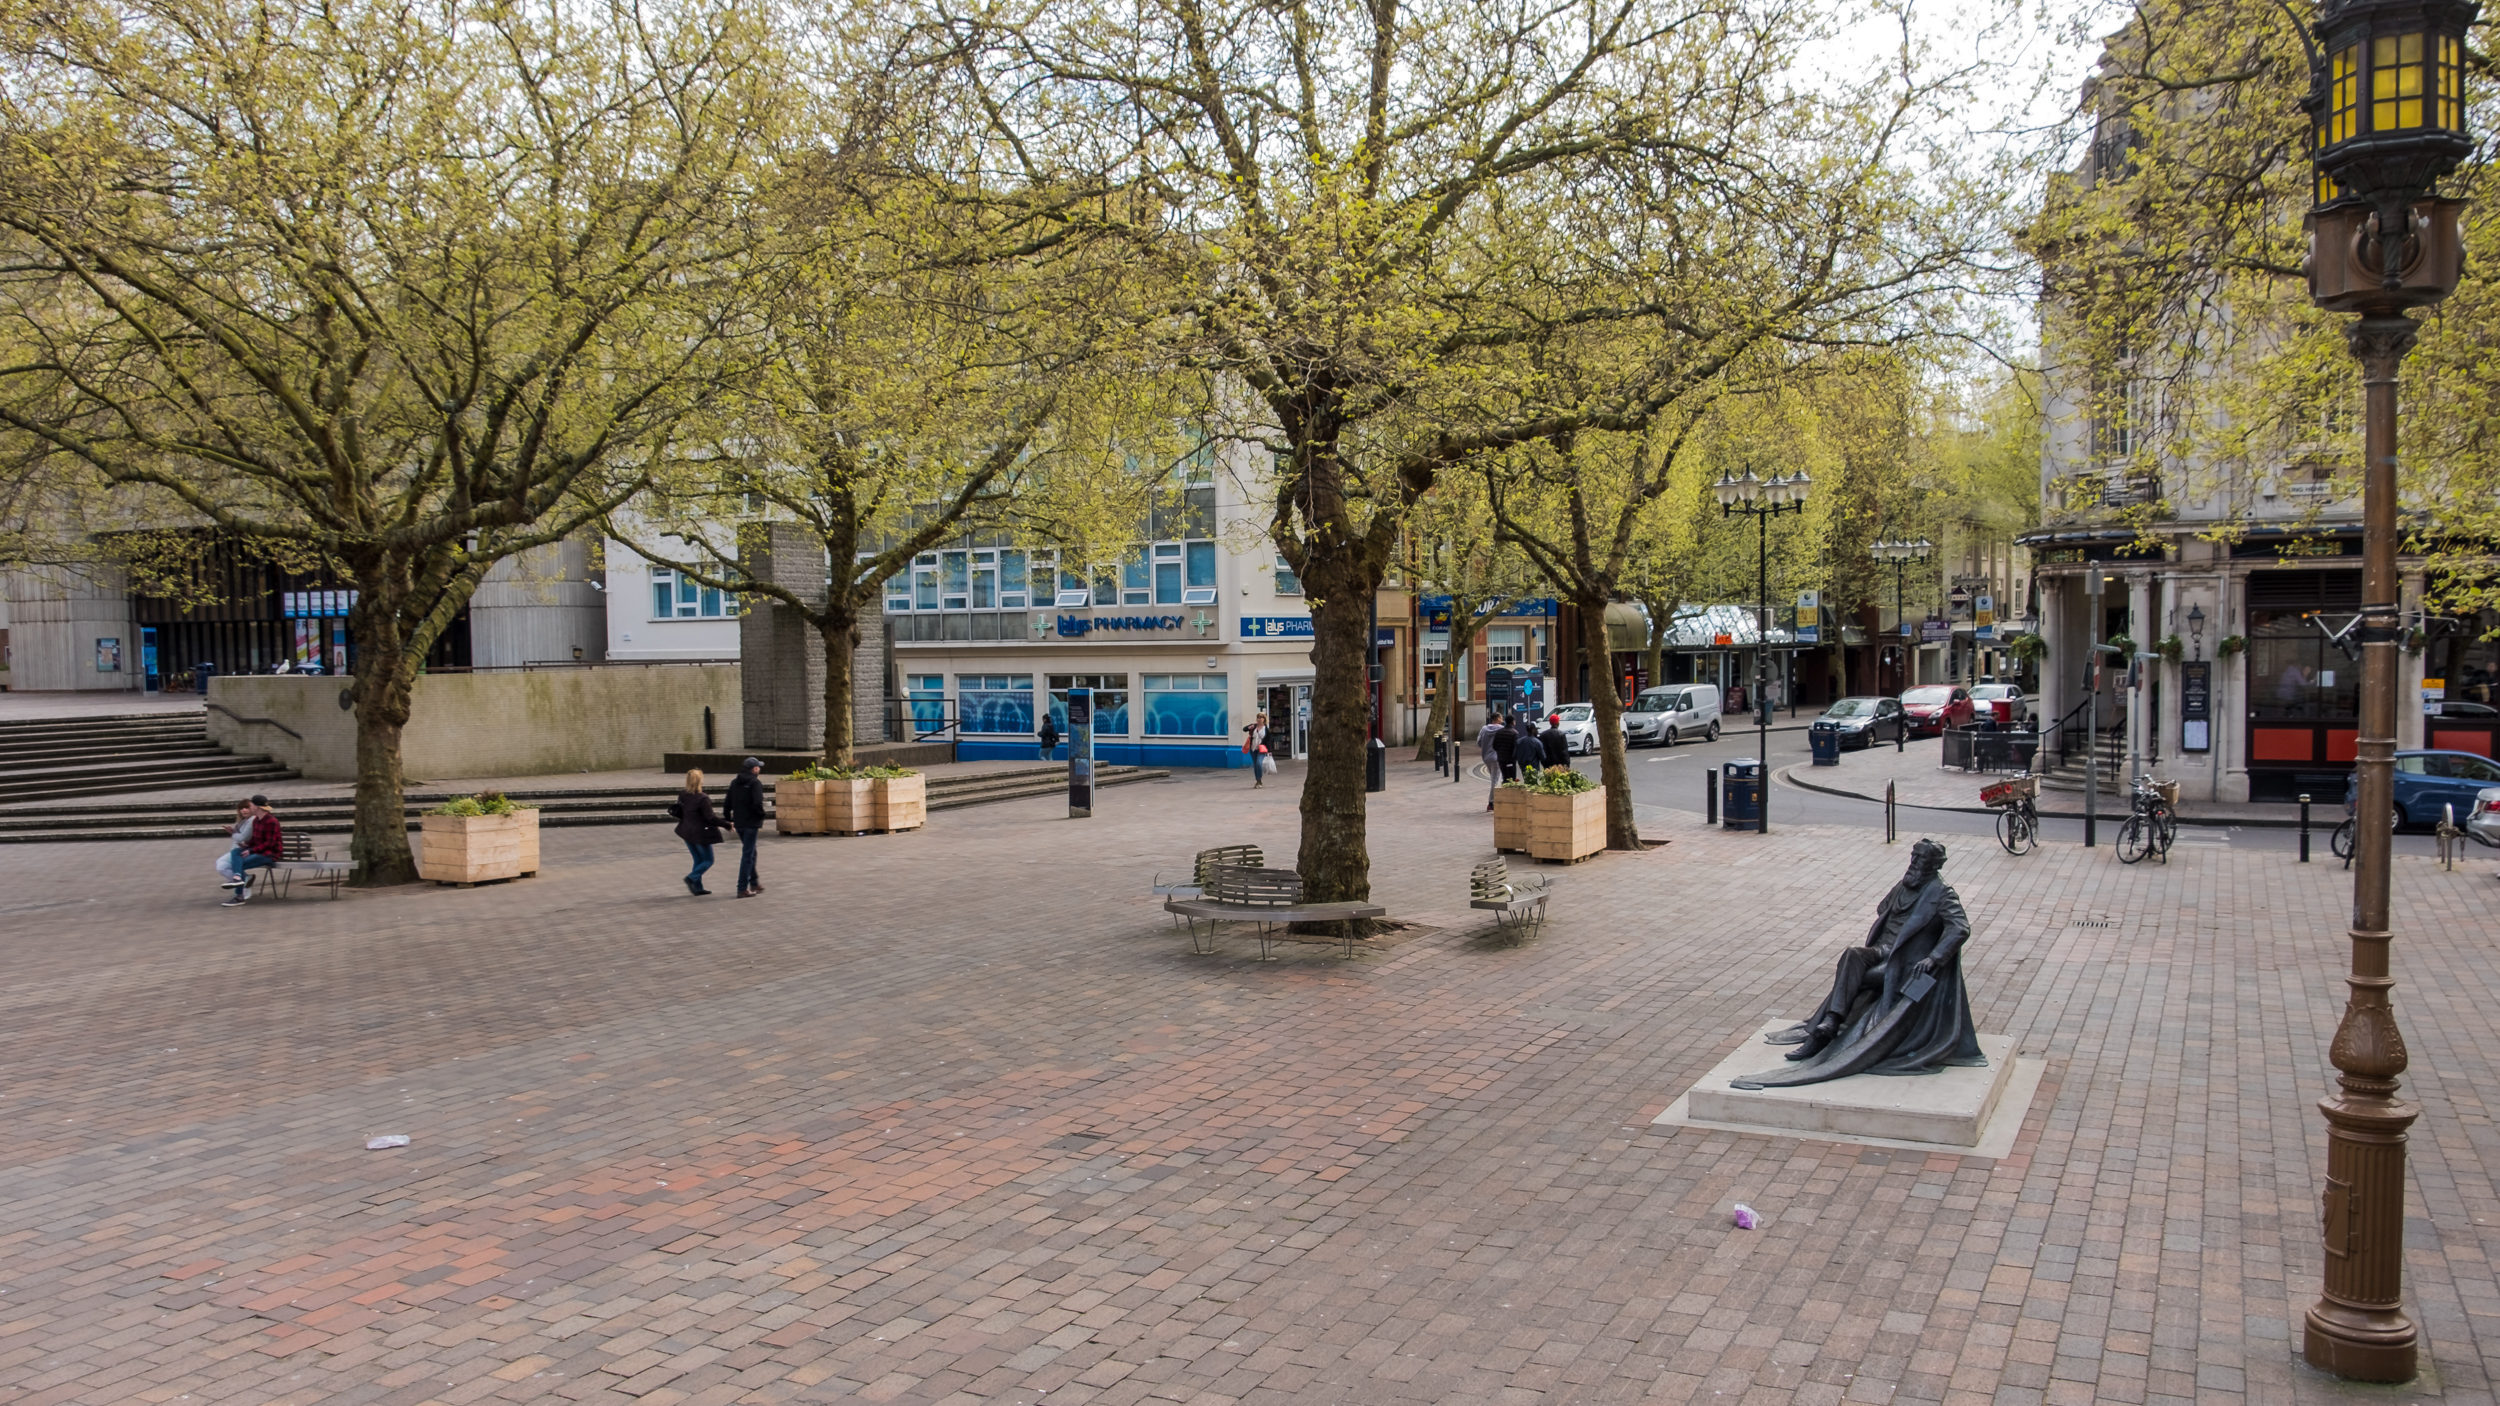 Photograph of Portsmouth Guildhall Square, Portsmouth UK